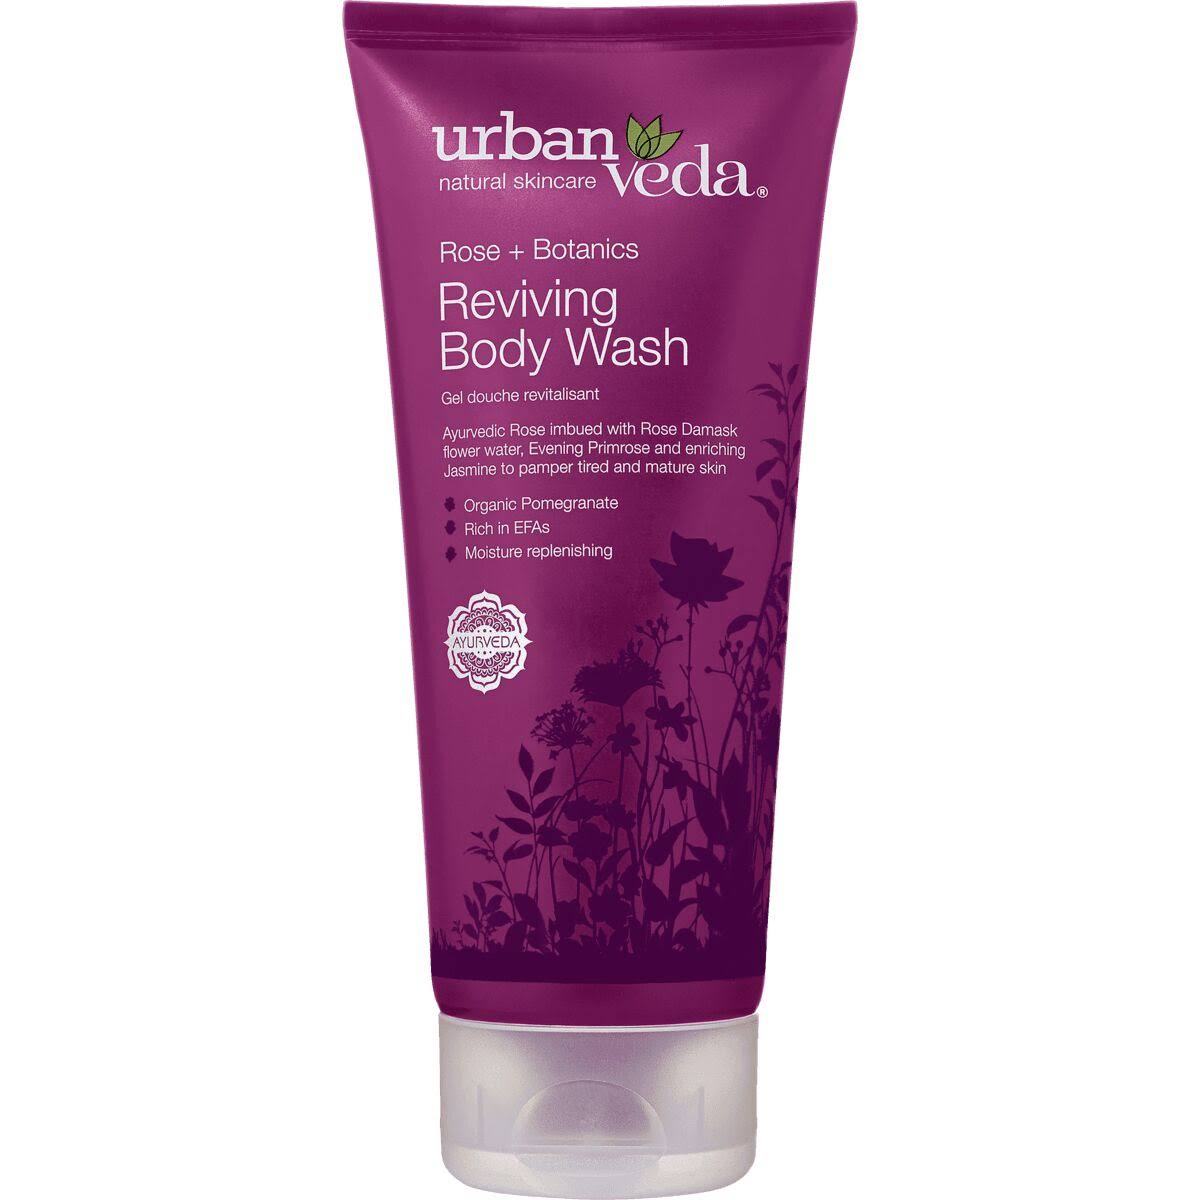 Urban Veda Reviving Body Wash - 200ml